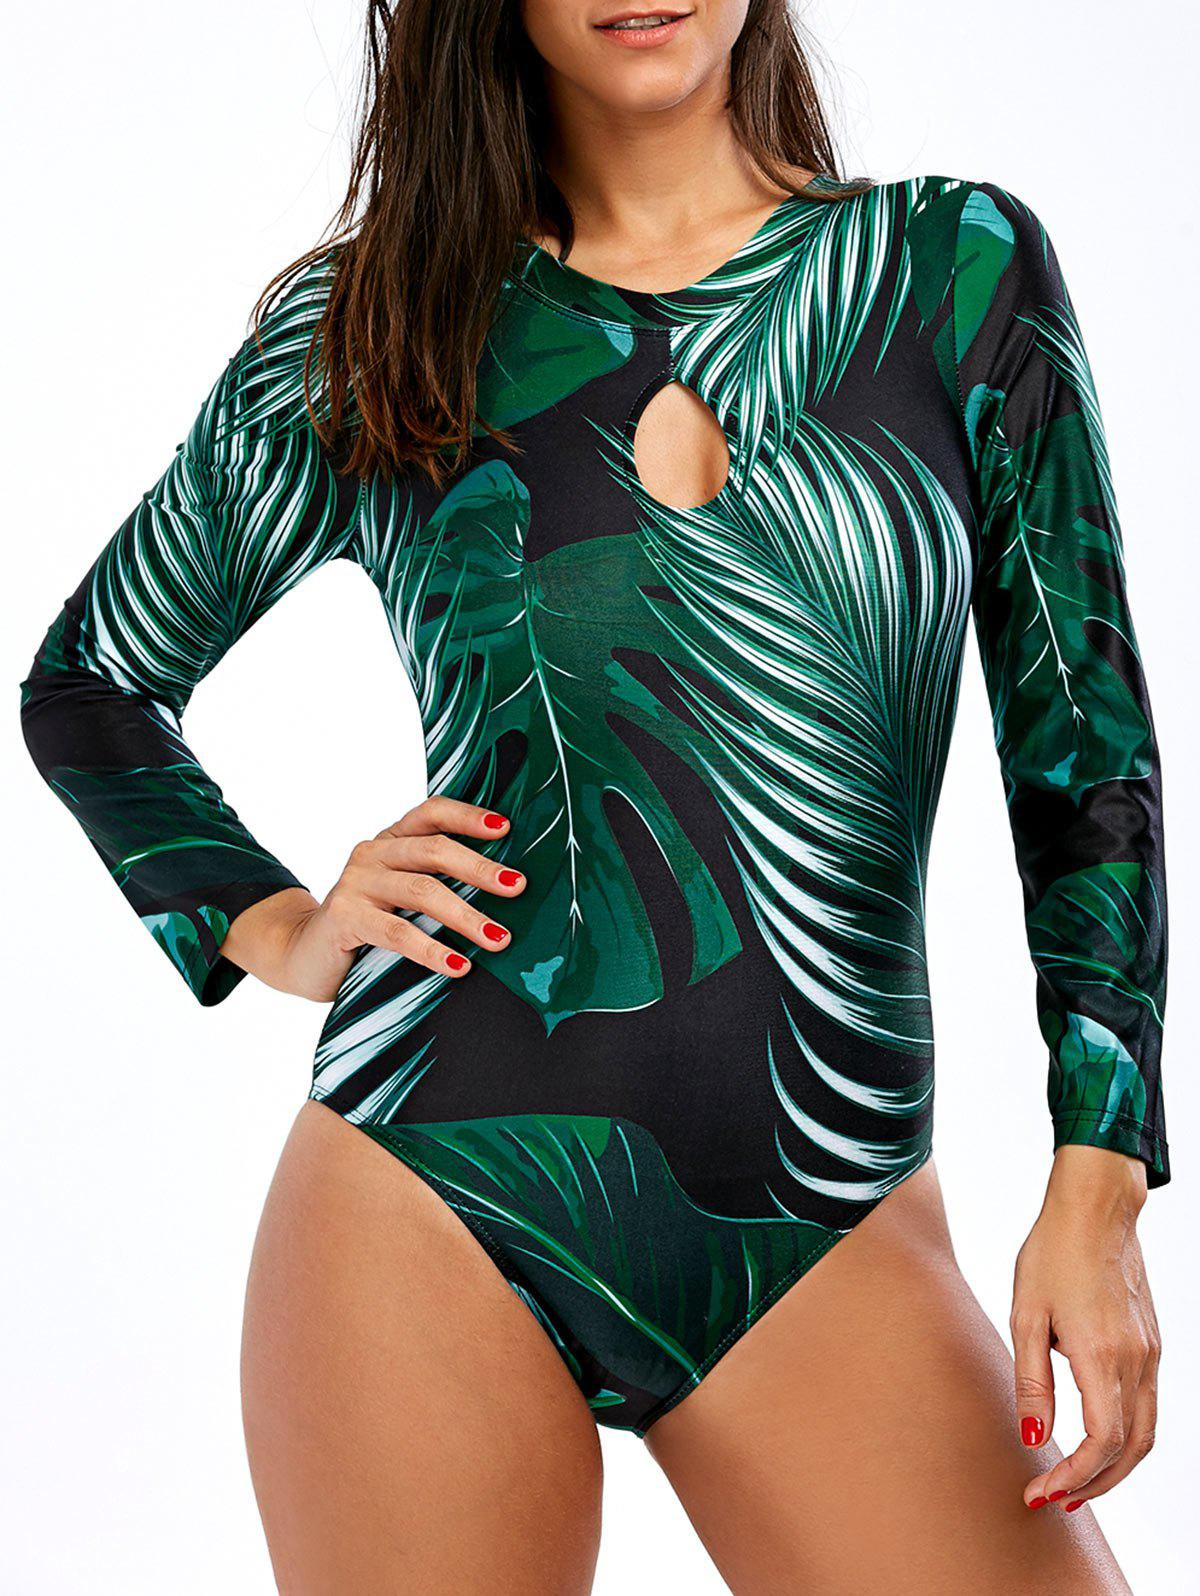 Backless Palm Tree Unlined One-Piece Swimsuit - COLORMIX XL